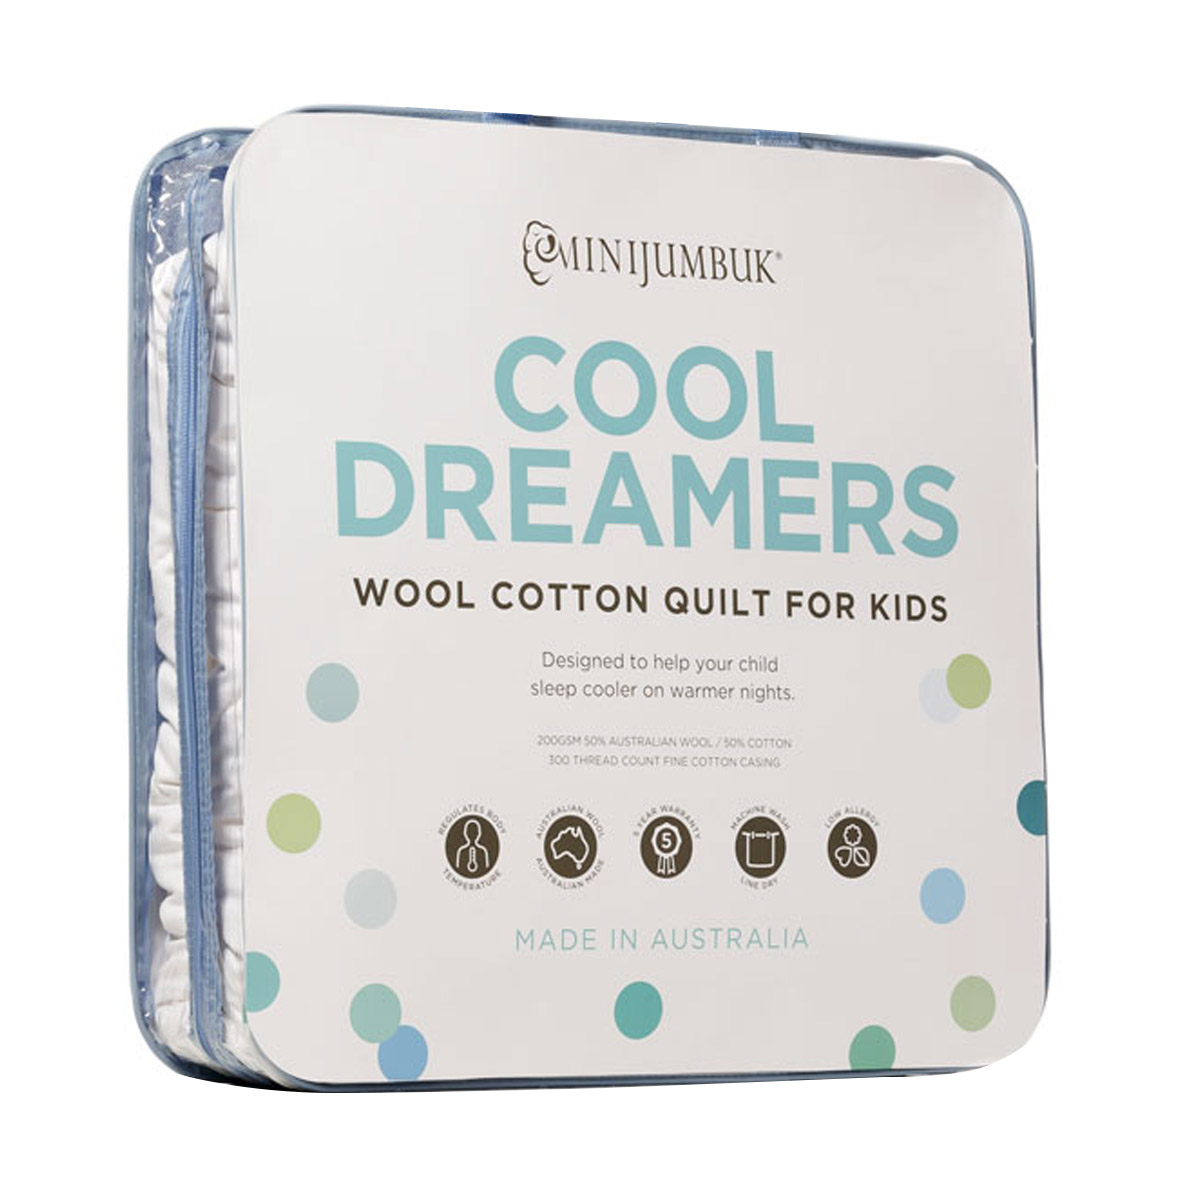 MiniJumbuk Cool Dreamers Kids Wool Cotton Kids Quilt